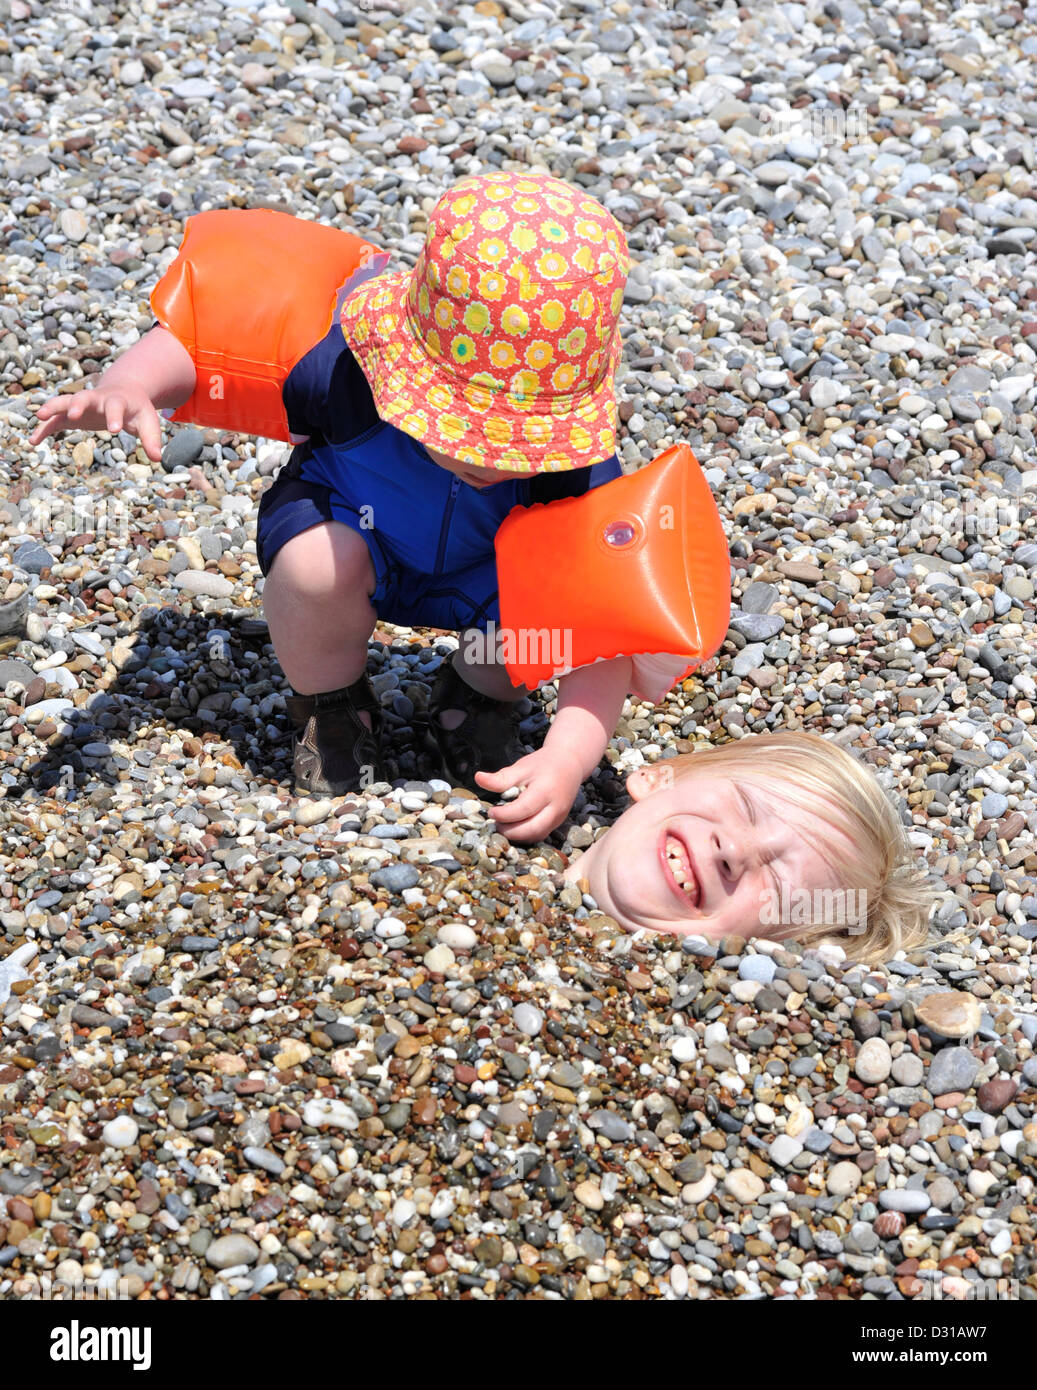 A young boy covering his elder brother with pebbles on the beach - Stock Image